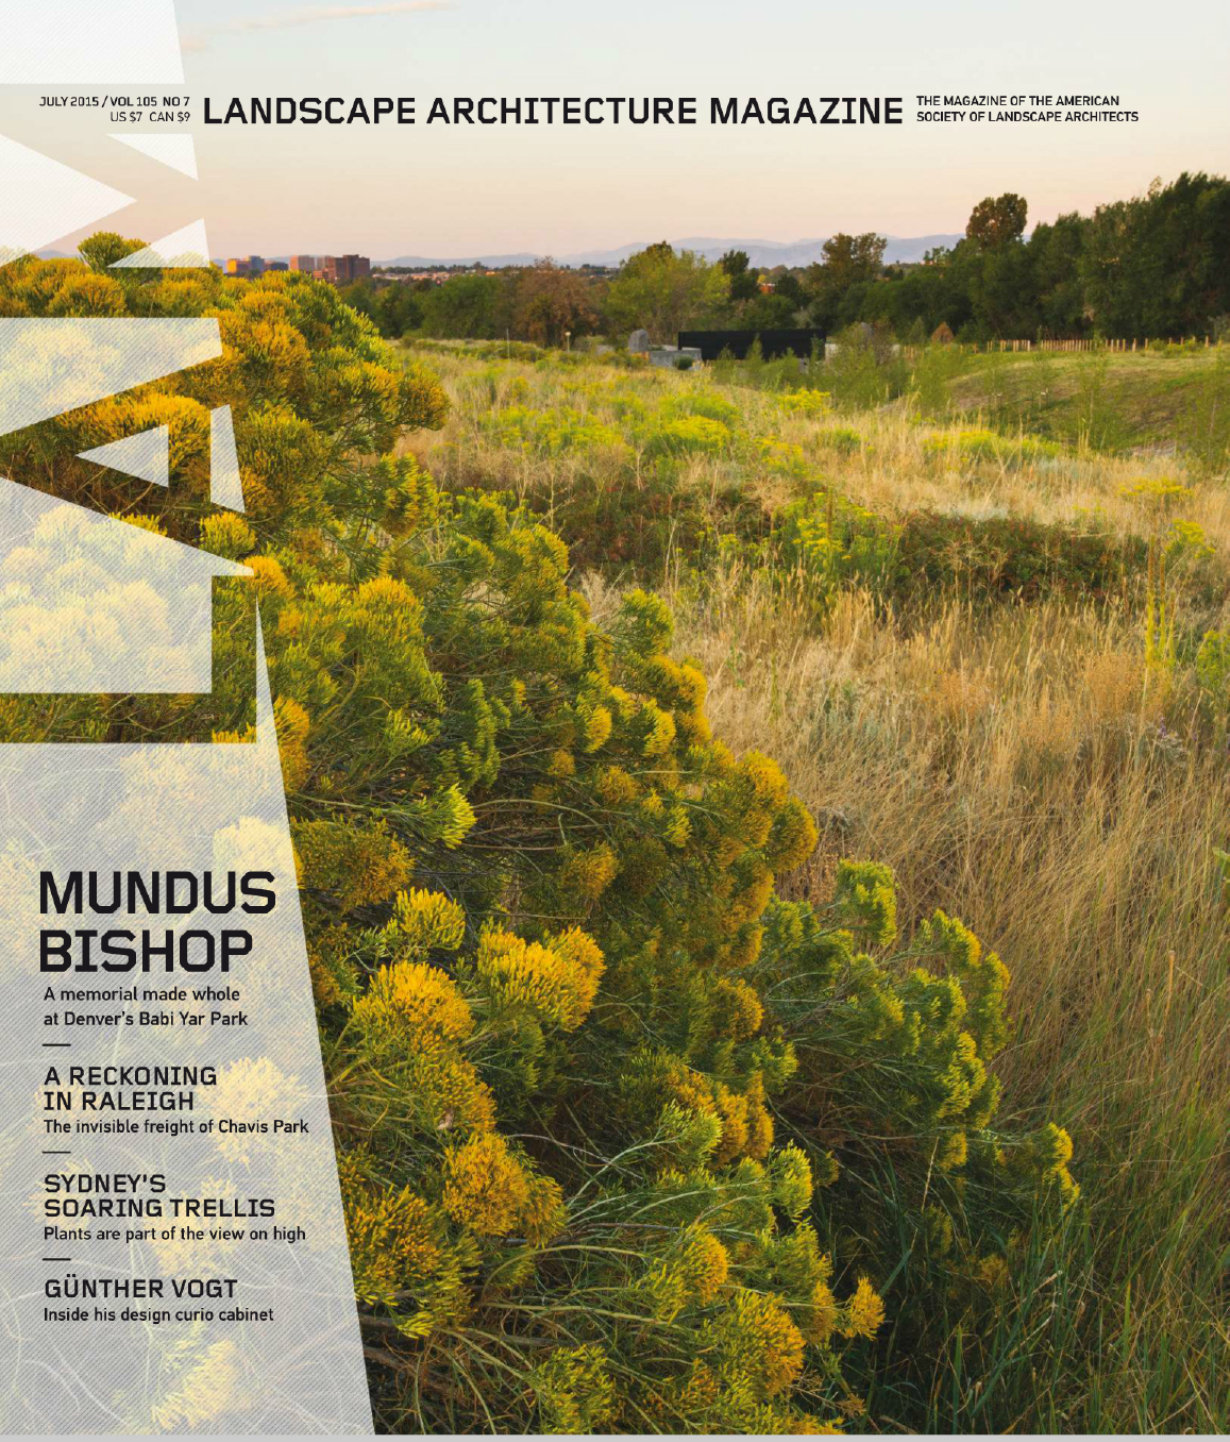 landscape architecture magazine milan expo 2015 july 2015 biber